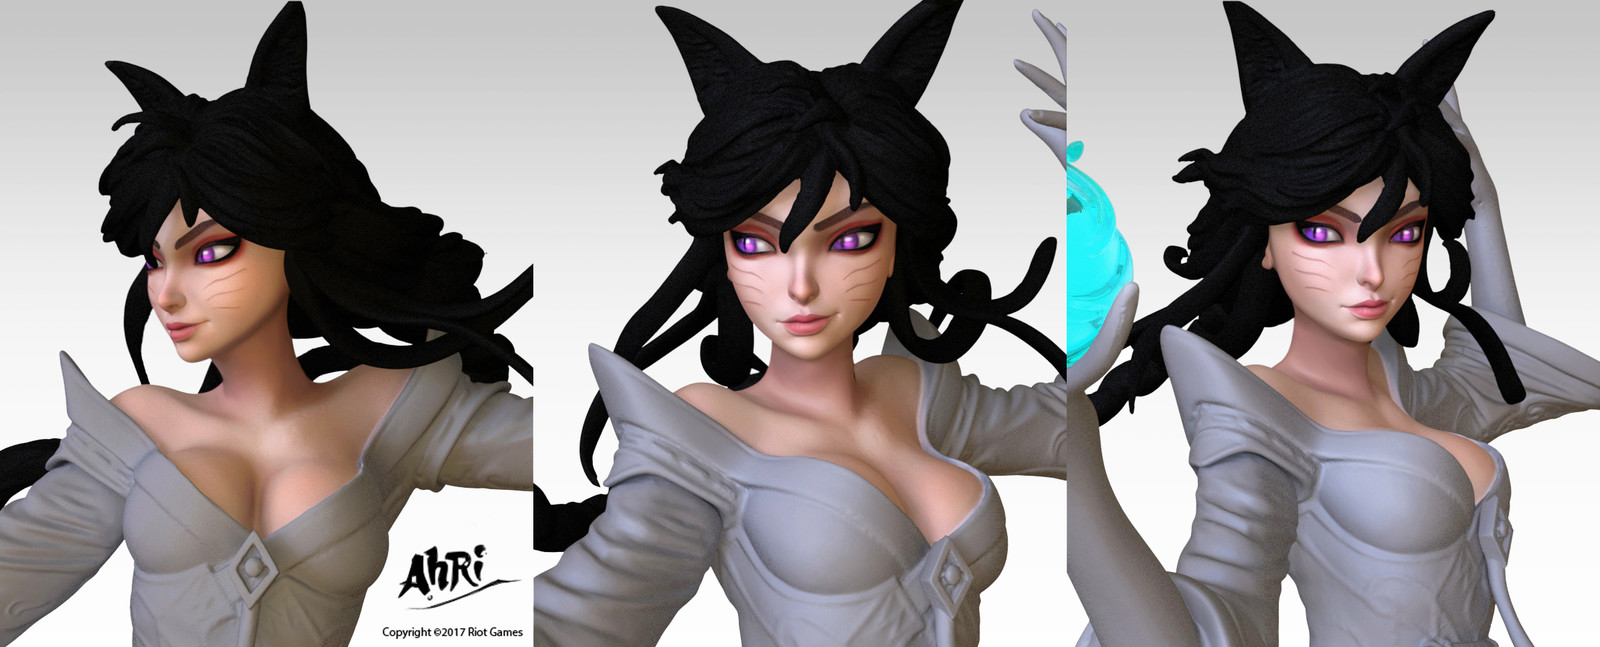 AHRI: A New Dawn Statue (Face)